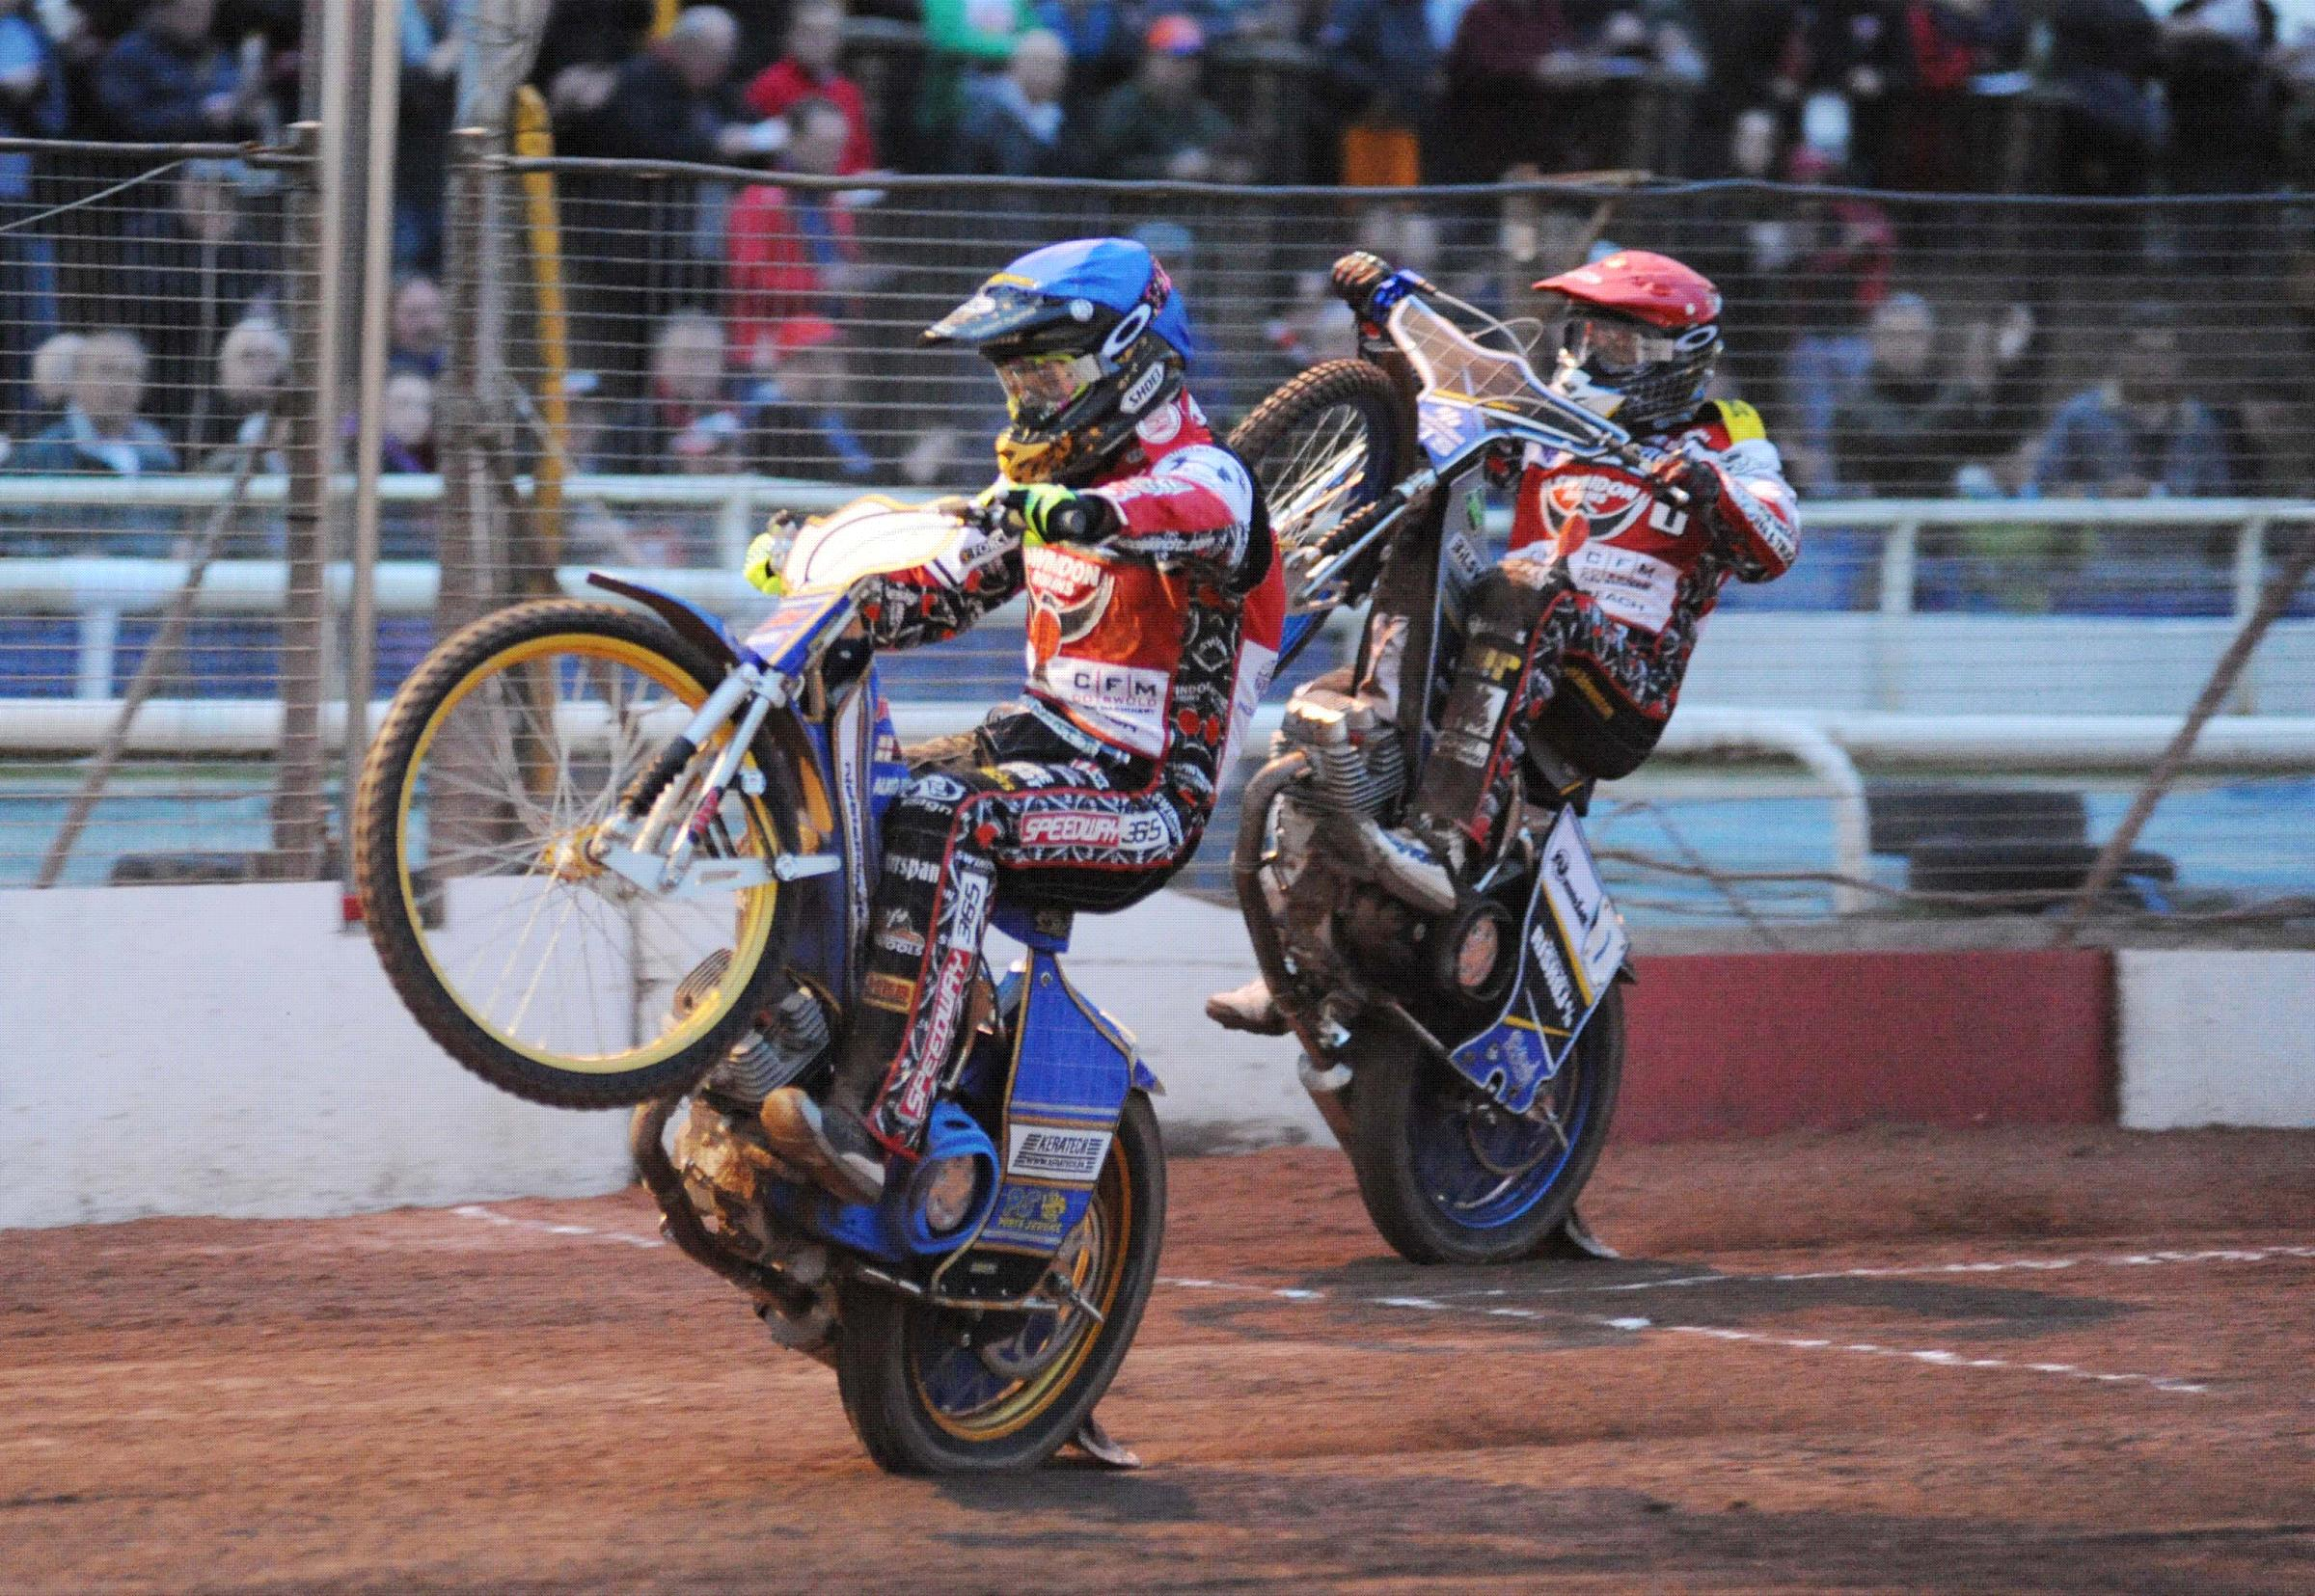 Peter Kildemand and Nicolai Kilndt celebrate as Robins get their first win of the season